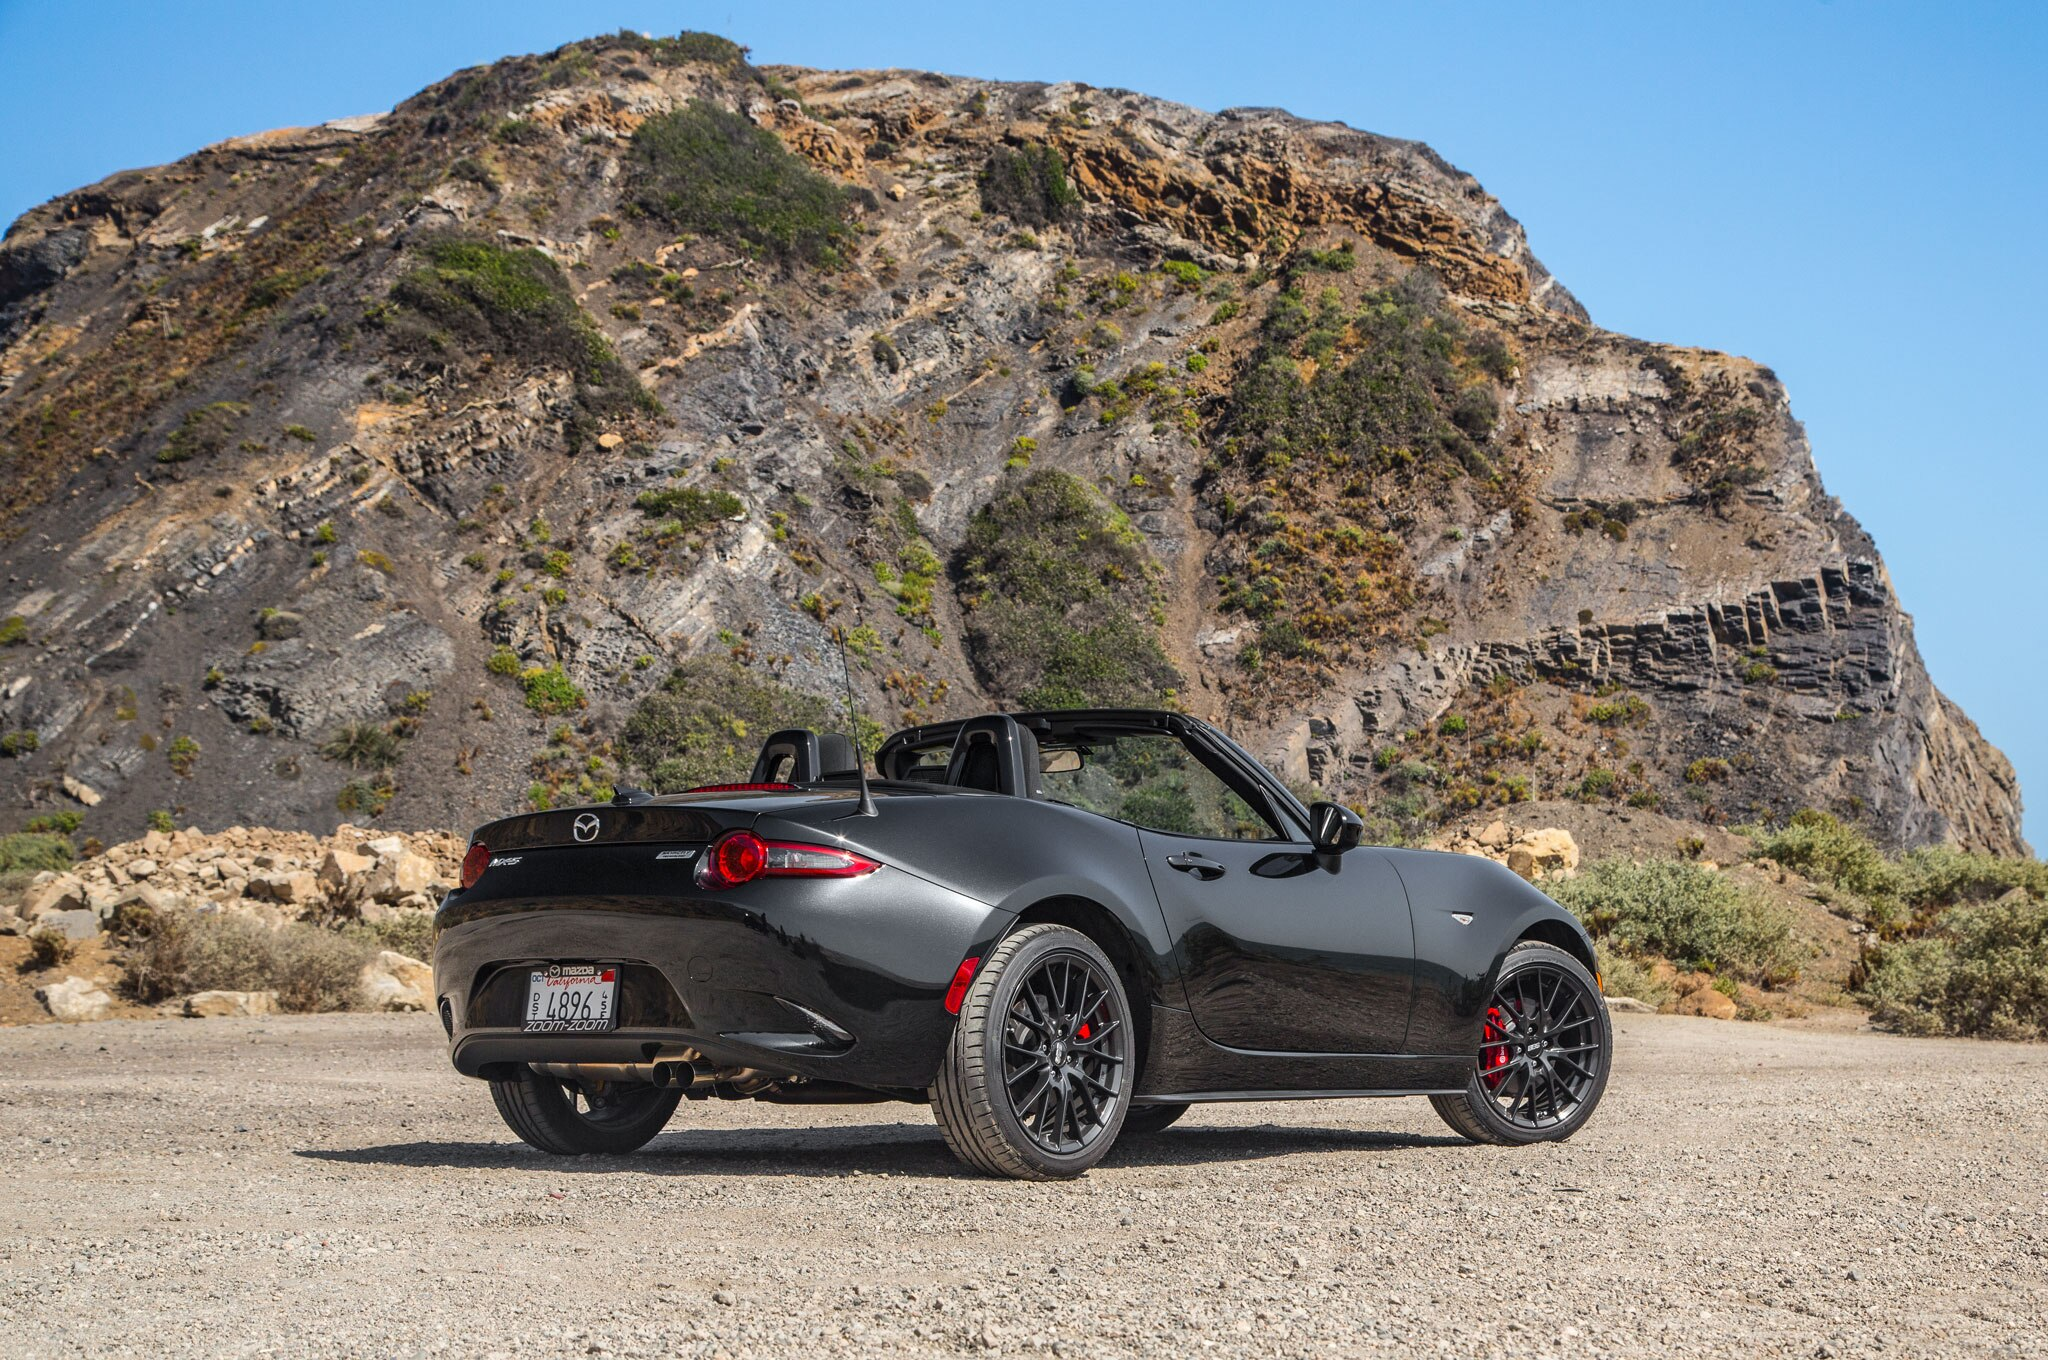 http://st.automobilemag.com/uploads/sites/11/2015/06/2016-Mazda-MX-5-Miata-Club-rear-three-quarter-03.jpg